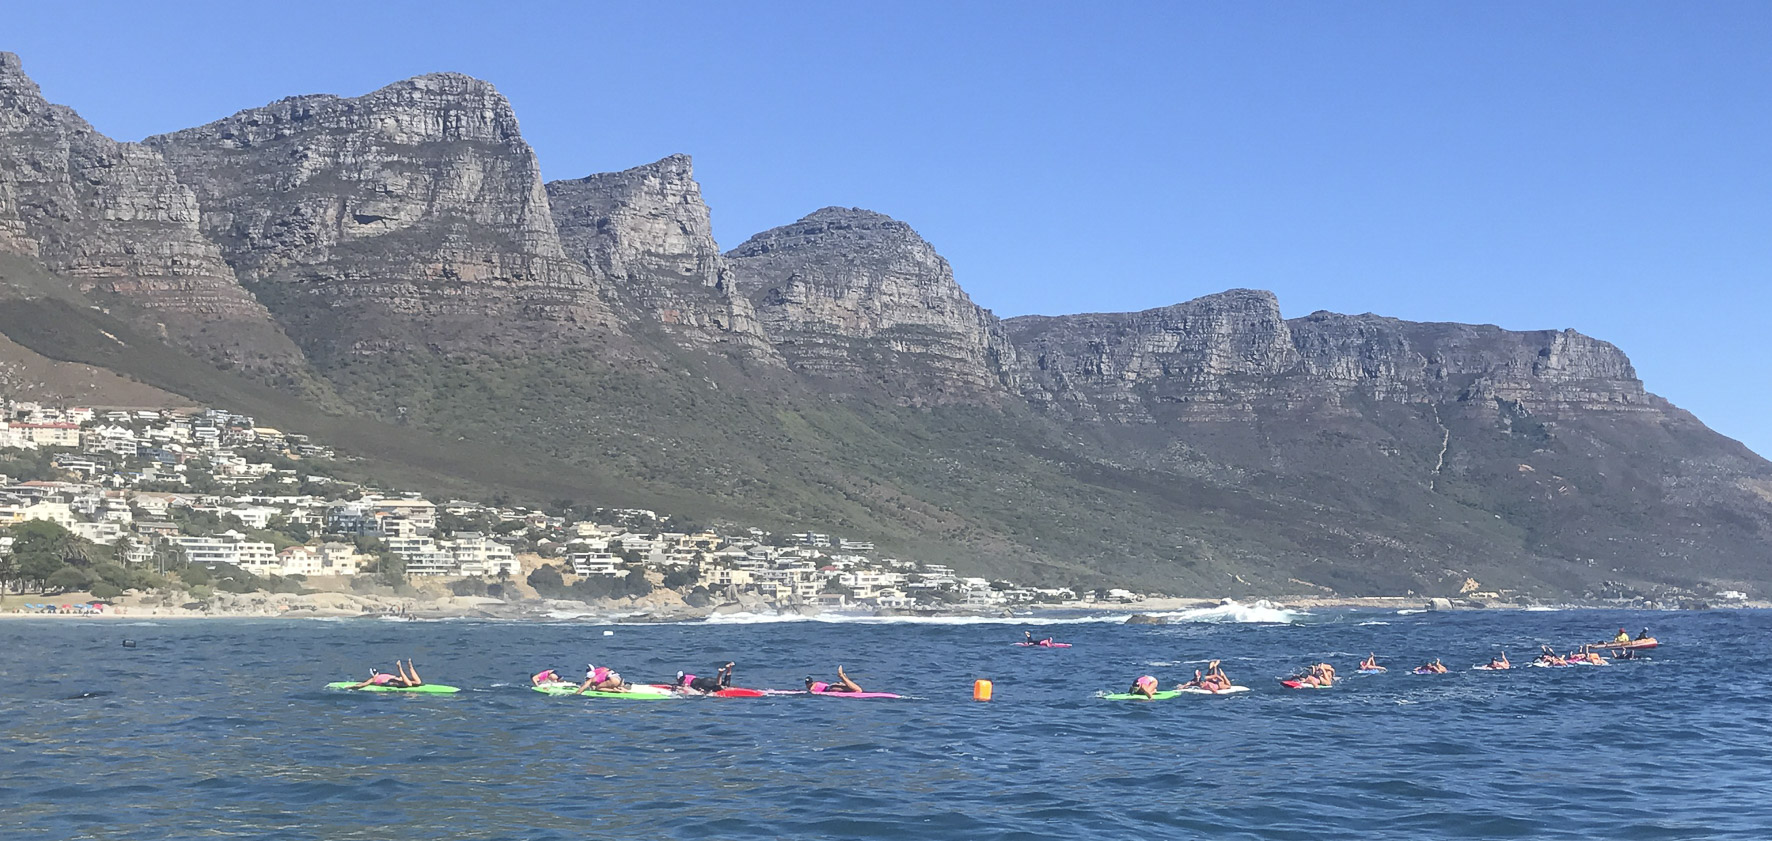 Picture Andrew Ingram / Sea Rescue 170330 LSA champs at Camps Bay